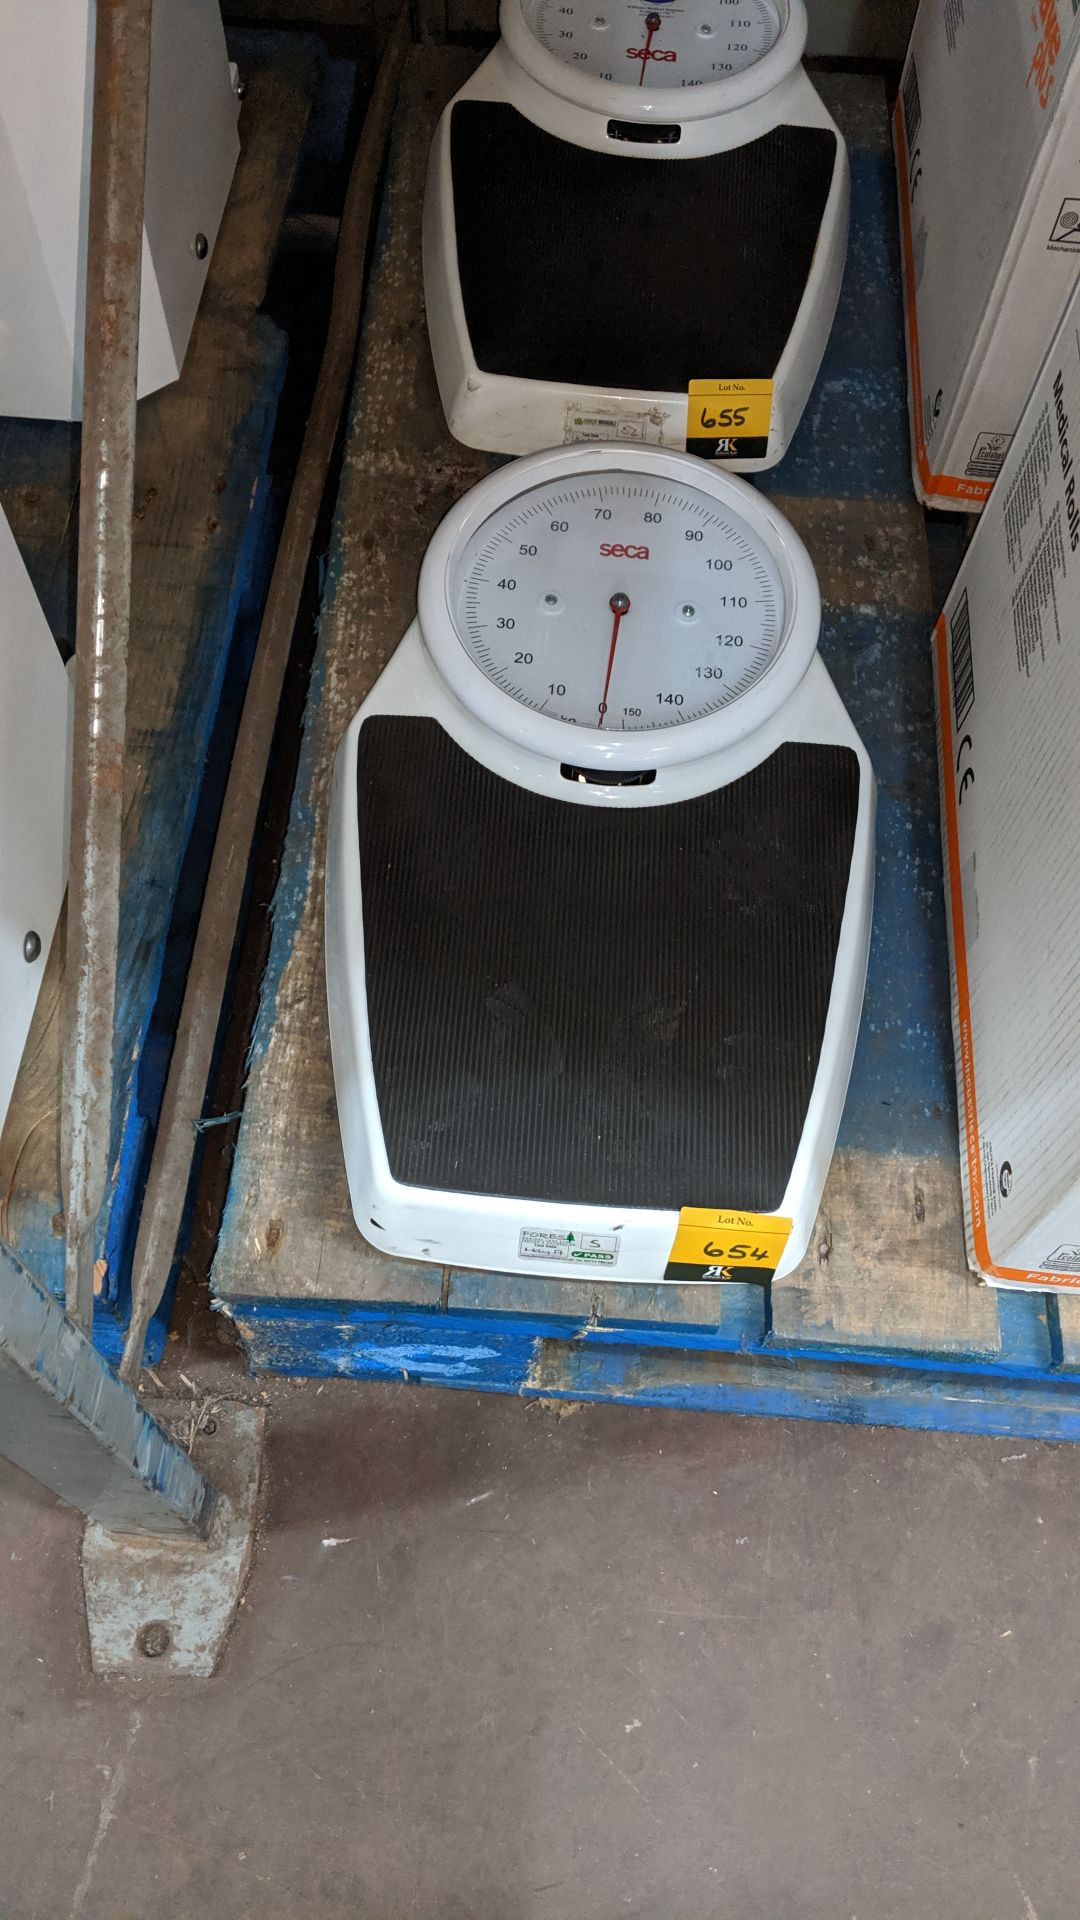 Lot 654 - Seca stand-on scales. This is one of a large number of lots used/owned by One To One (North West)